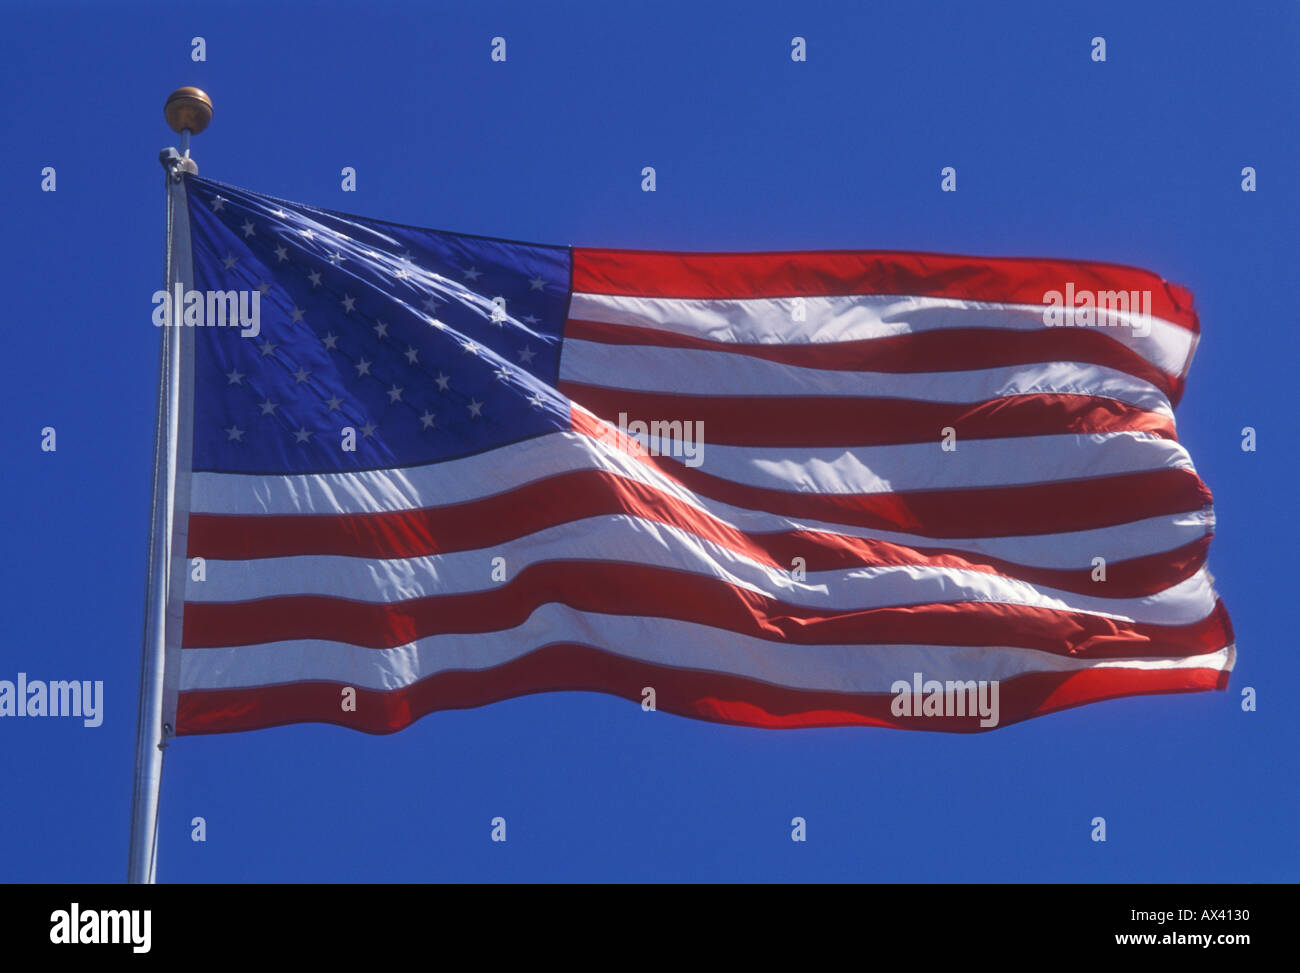 American flag flapping in breeze - Stock Image